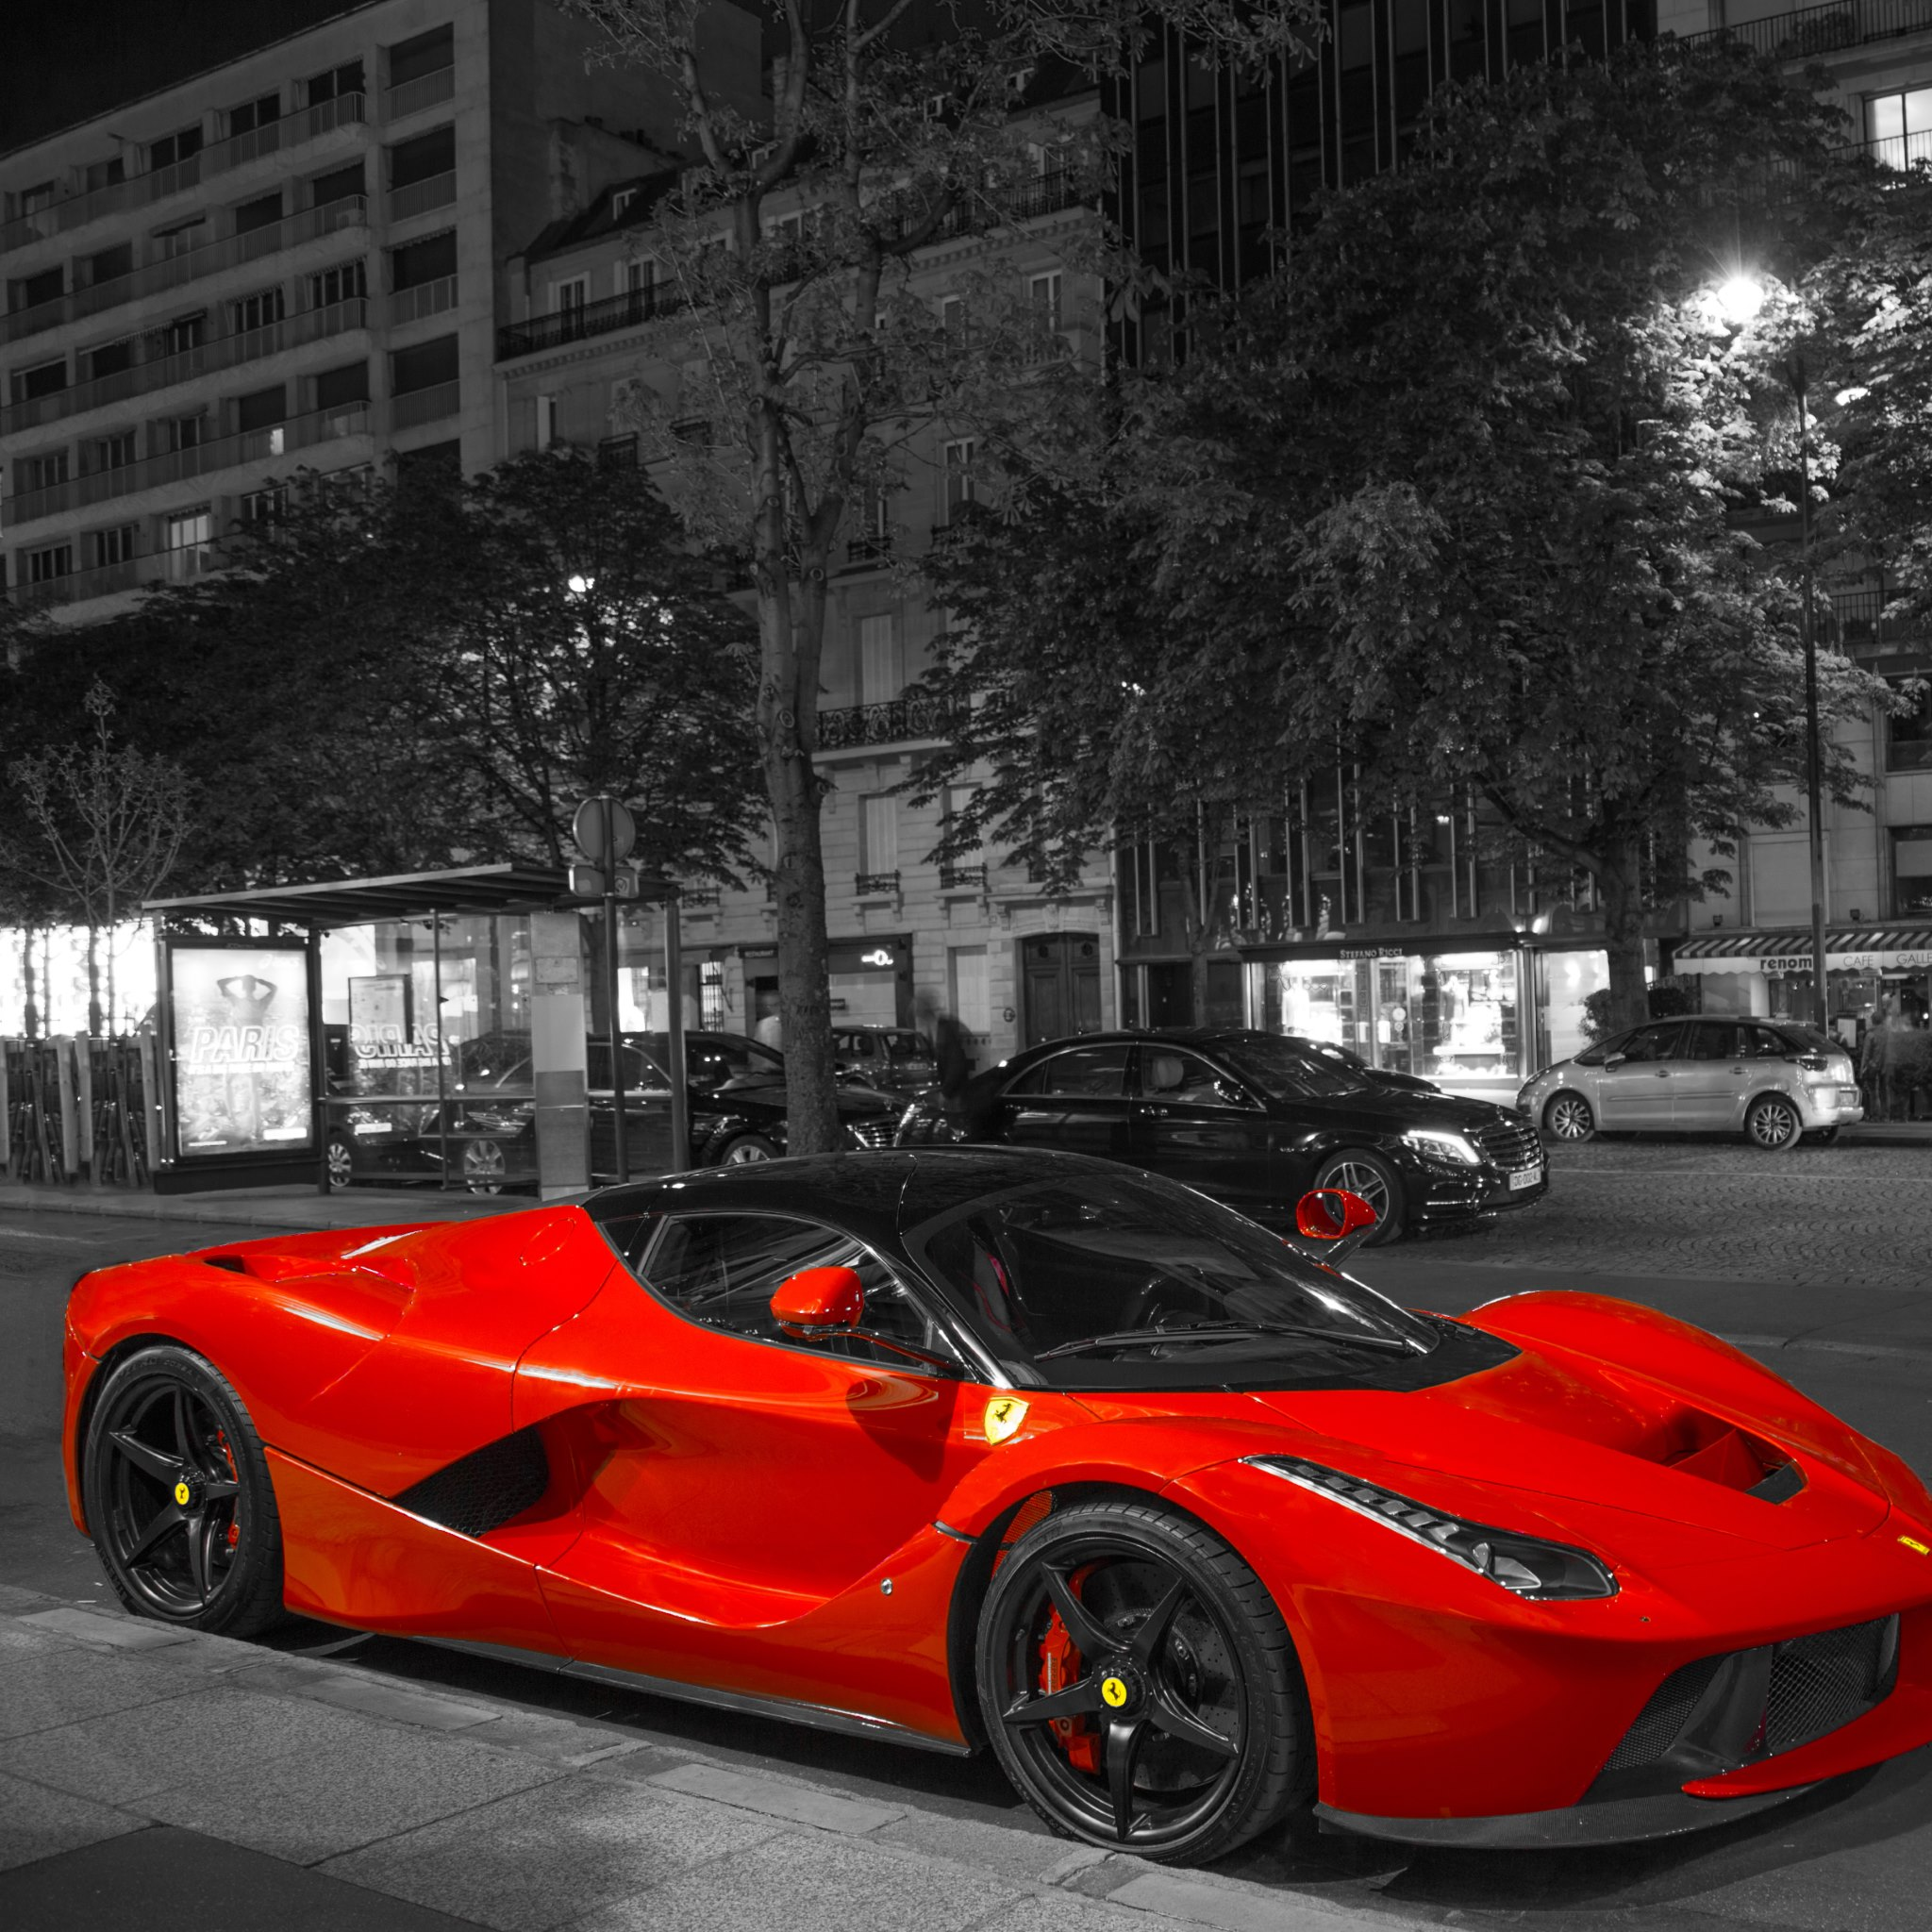 super red car laferrari wallpapers in hd 4k and wide sizes